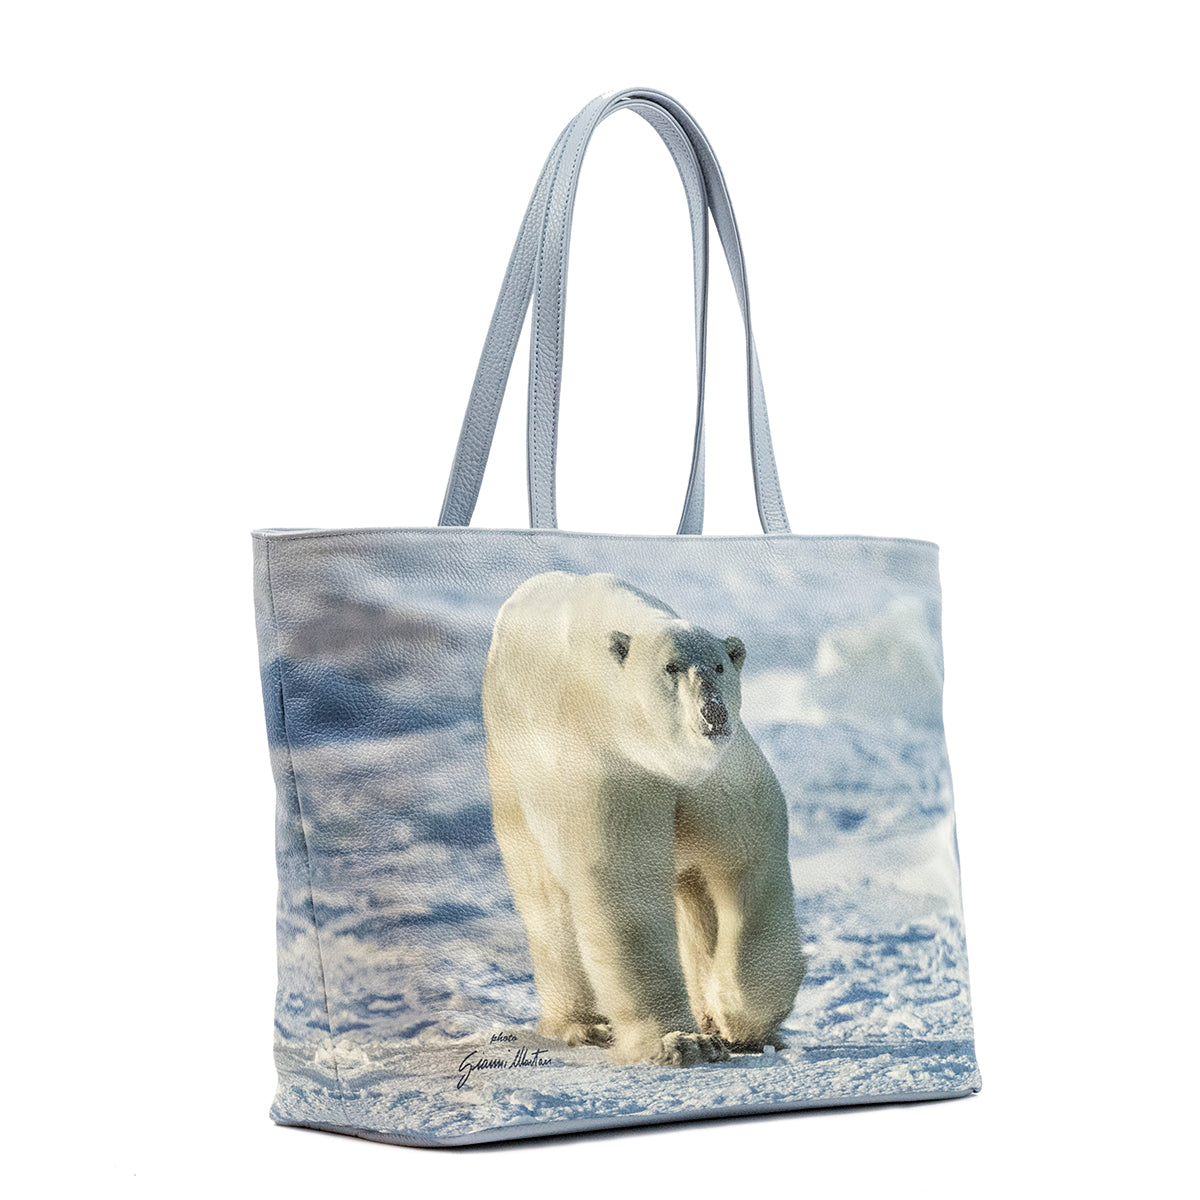 Tote bag grana dollaro